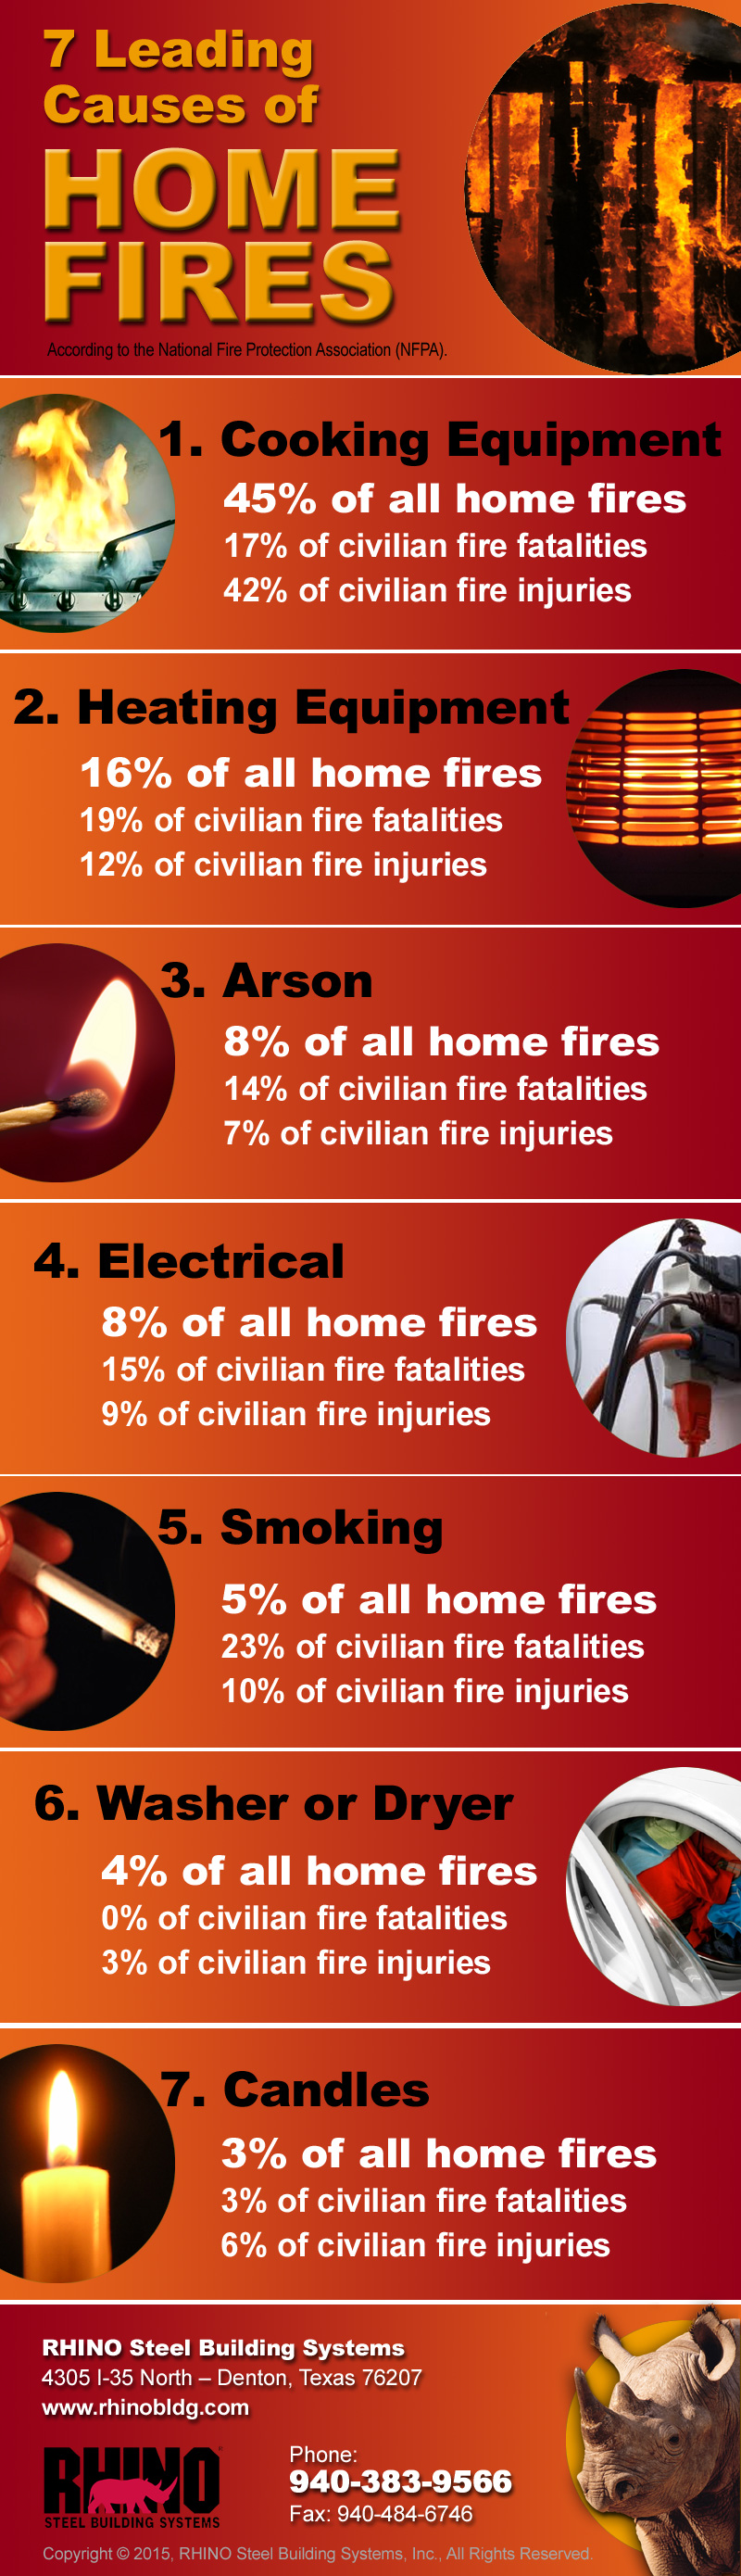 10 Fire Prevention Tips Part 2 Structural Steel Fireproofing Hint Orange Extension Cords Are A Red Flag During Home Inspection Inforgraphic Showing The Seven Leading Causes Of Fires In Usa